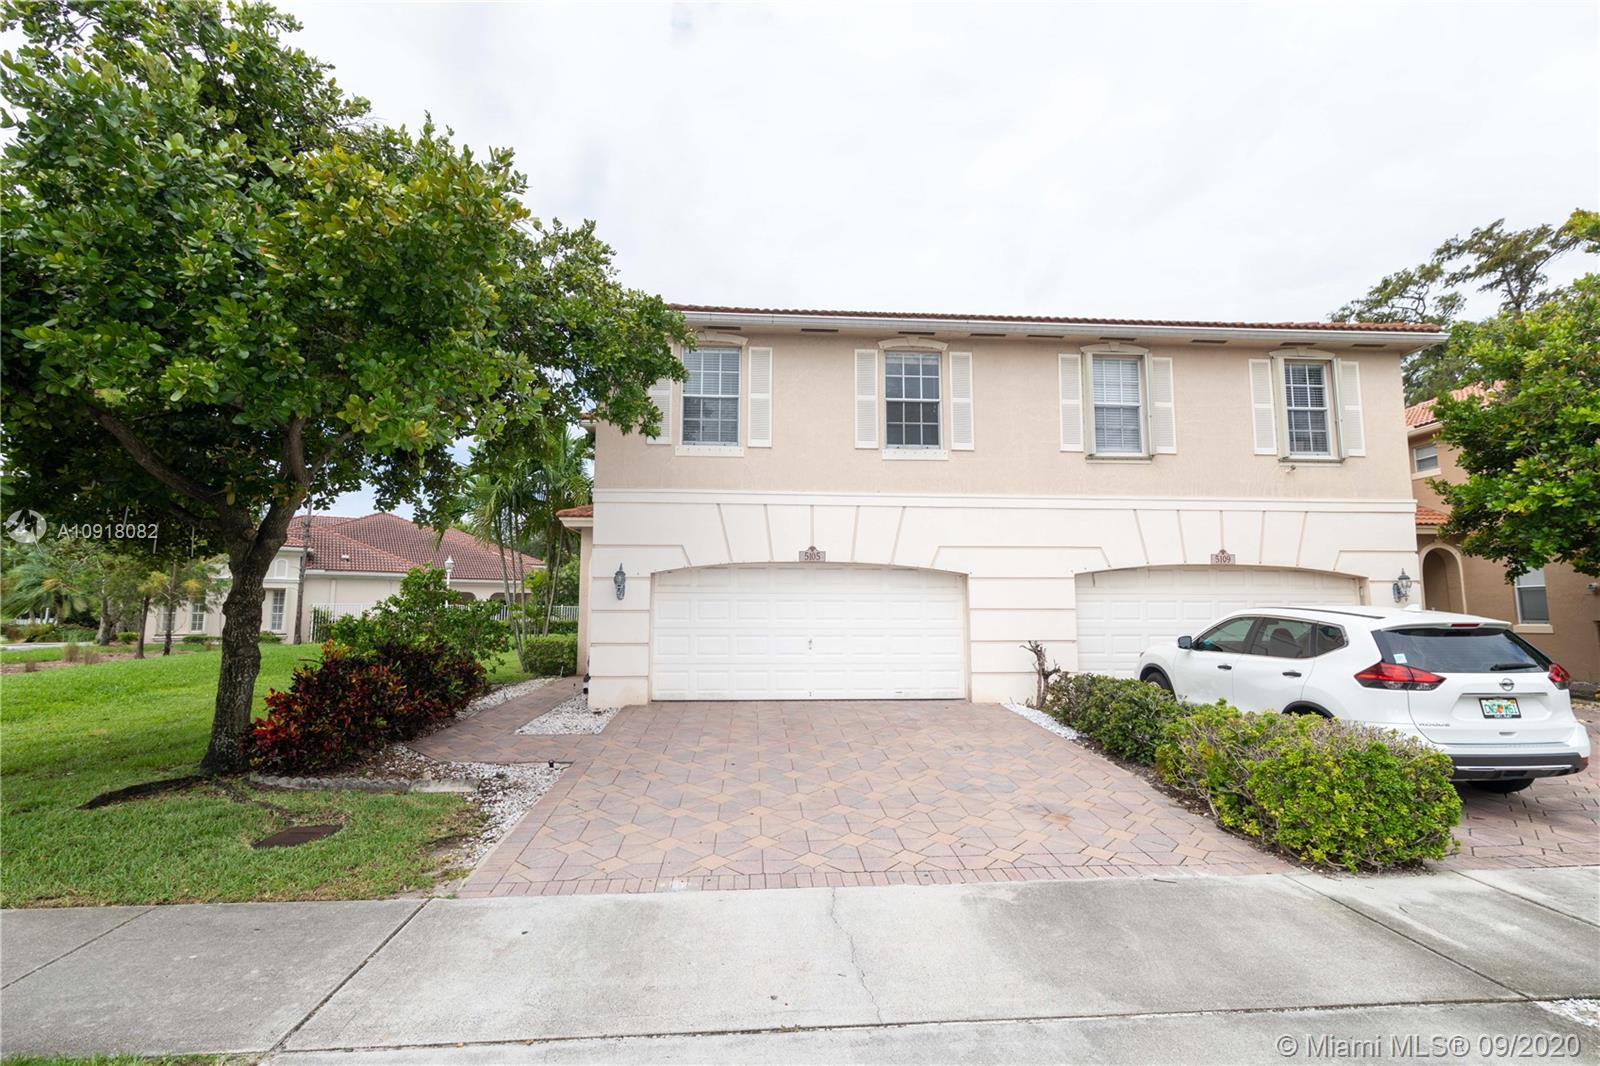 Very well maintained, spacious 3 Bedroom, 2 and half Bathroom, 1,616 Sqft townhouse with 2 car garage and 2 car driveway, located in very quiet community of Banyan Trials in Coconut Creek. Amenities includes Community Pool, Gym, Clubhouse, Kids Play area all included in very low monthly HOA $130/month.